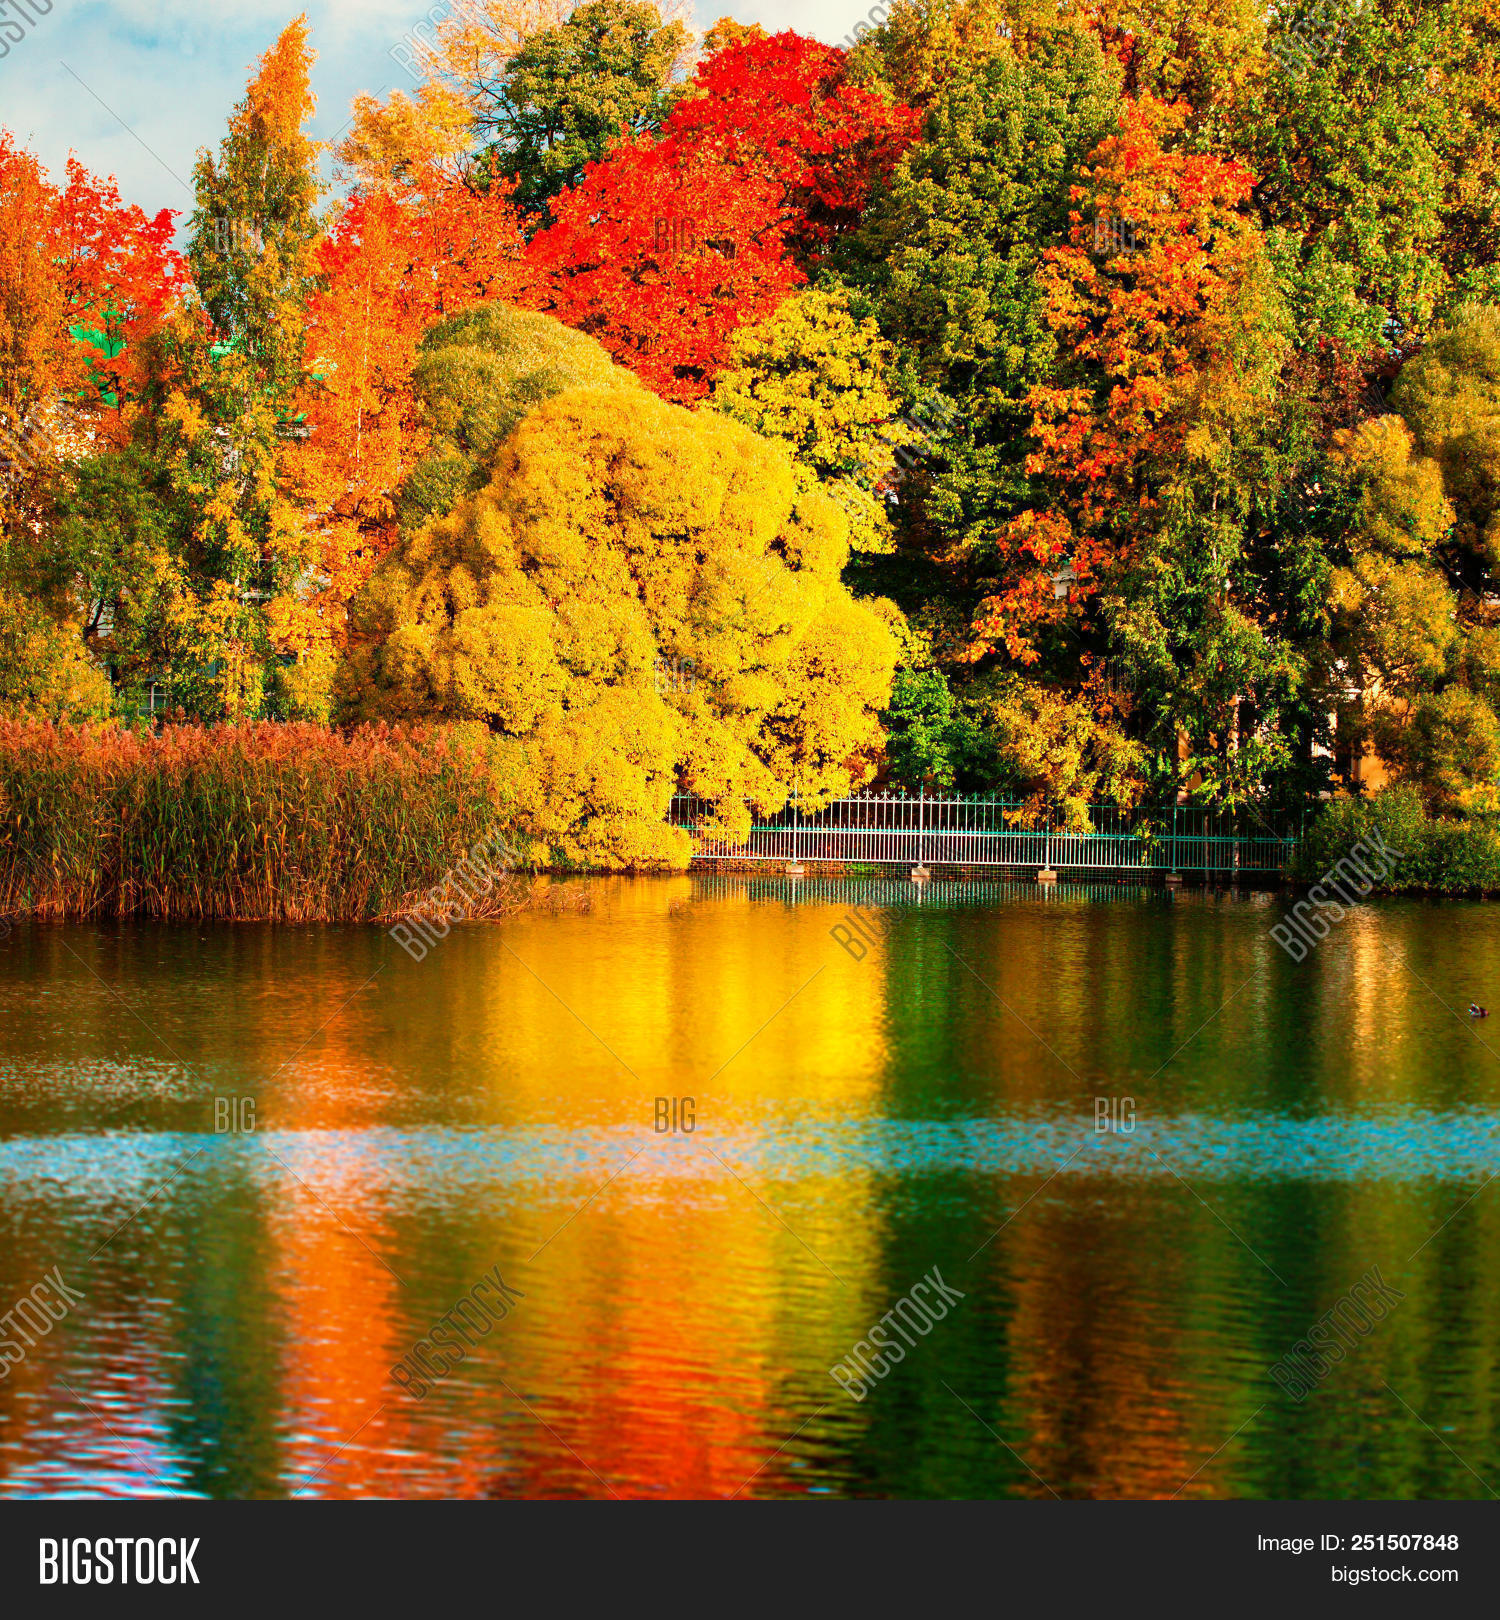 Beautiful autumn park image photo free trial bigstock for Immagini di laghetti